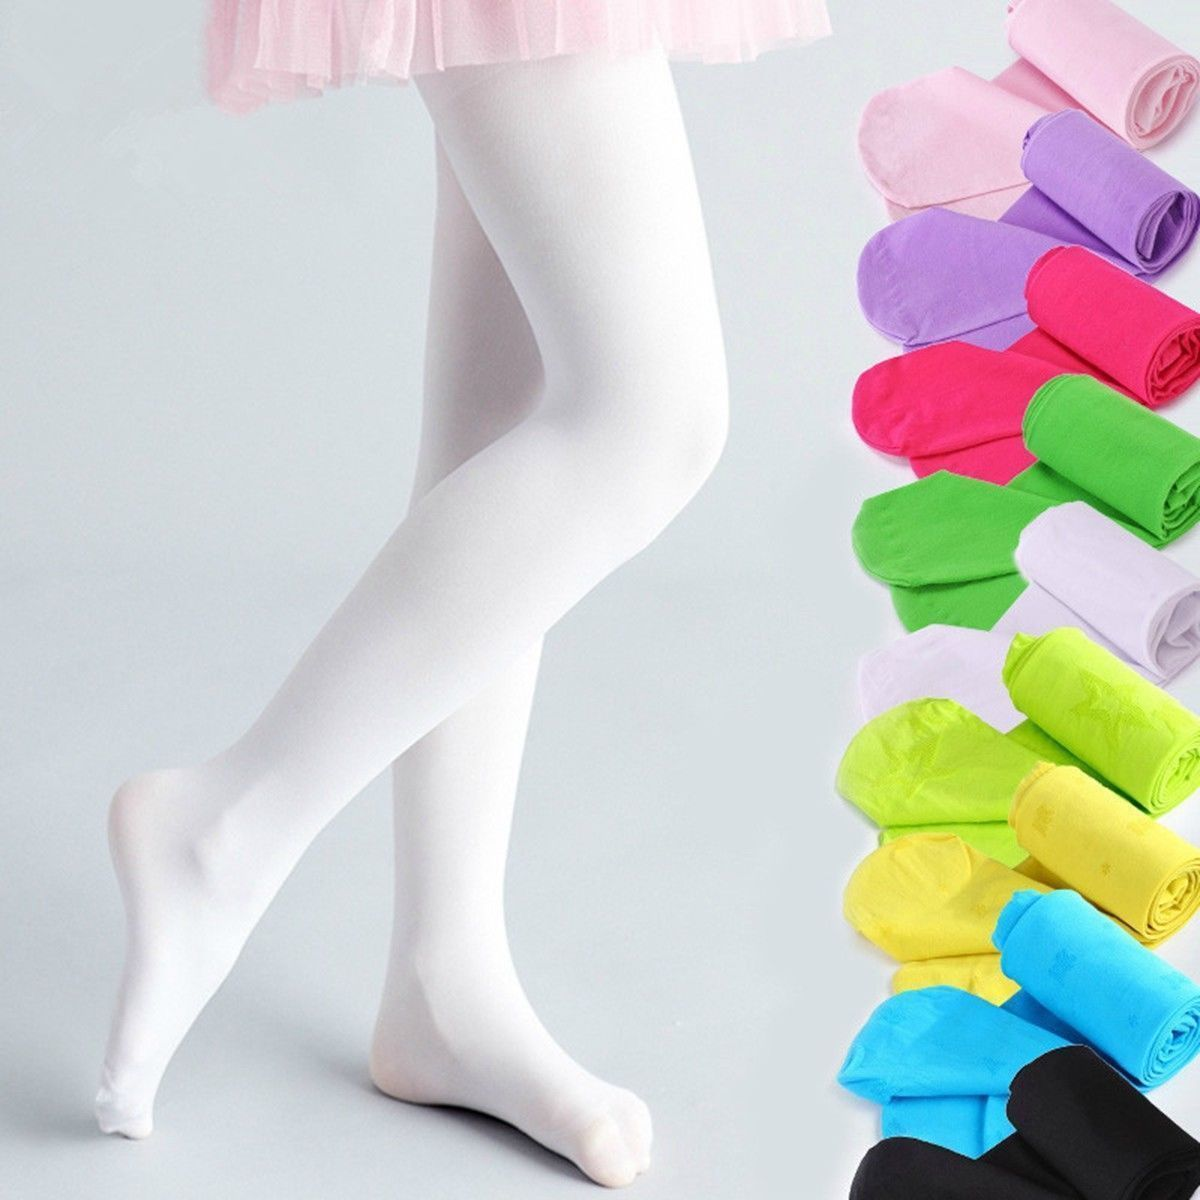 2019 Girls Kids Tights Opaque Pantyhose Hosiery Ballet Dance Stockings Candy Colors 1Pair Age 1-12Y